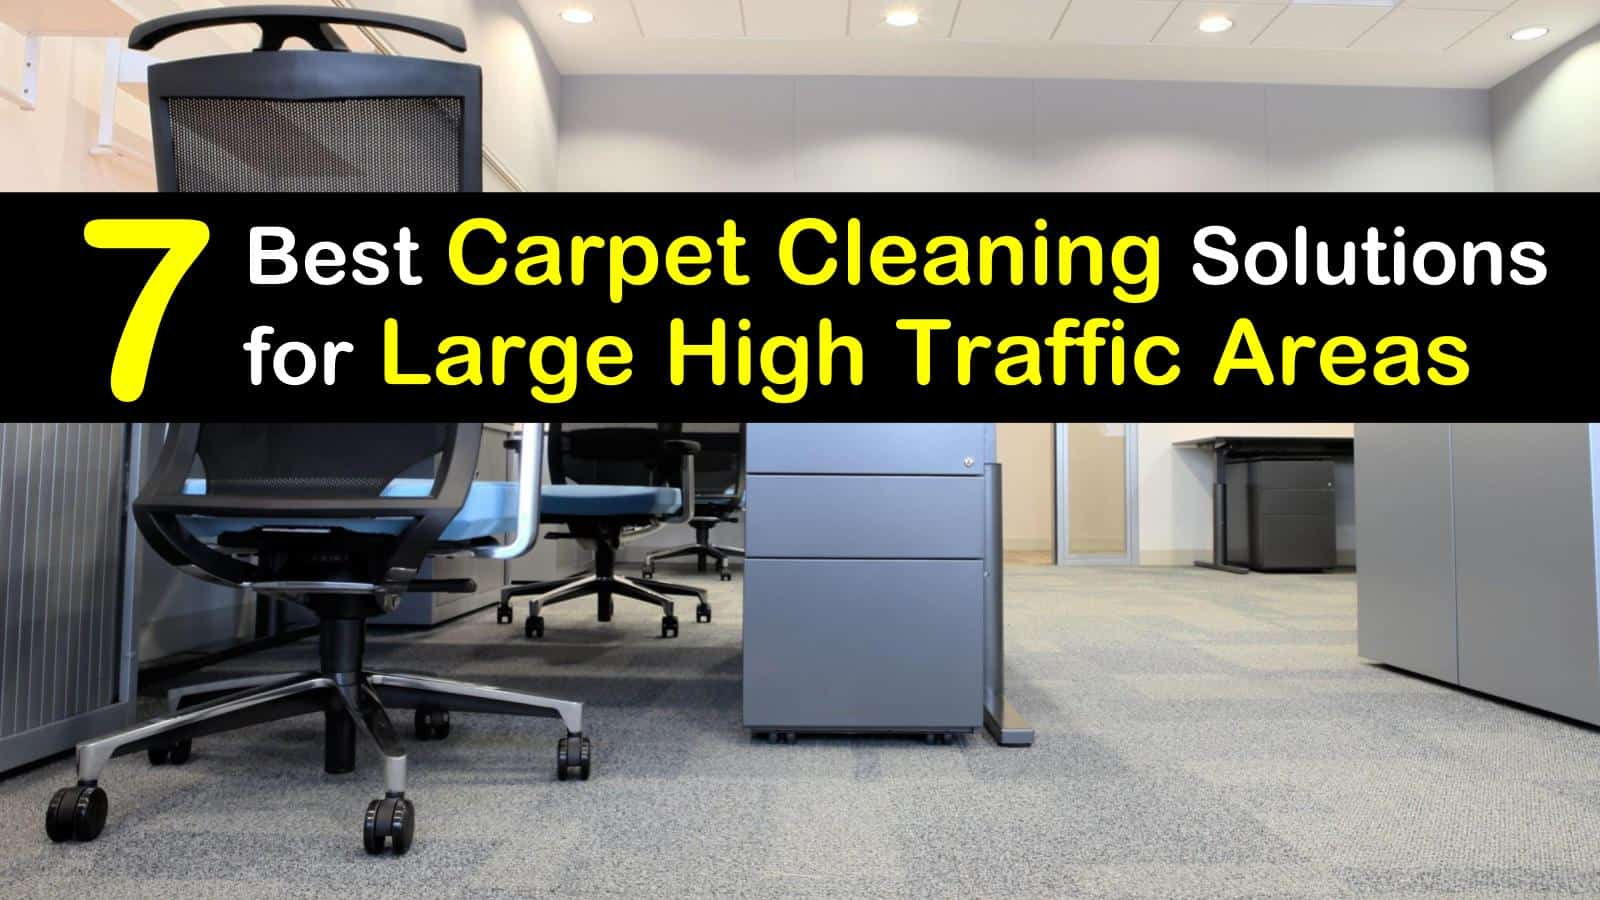 best carpet cleaning solutions for large high traffic areas itilimg